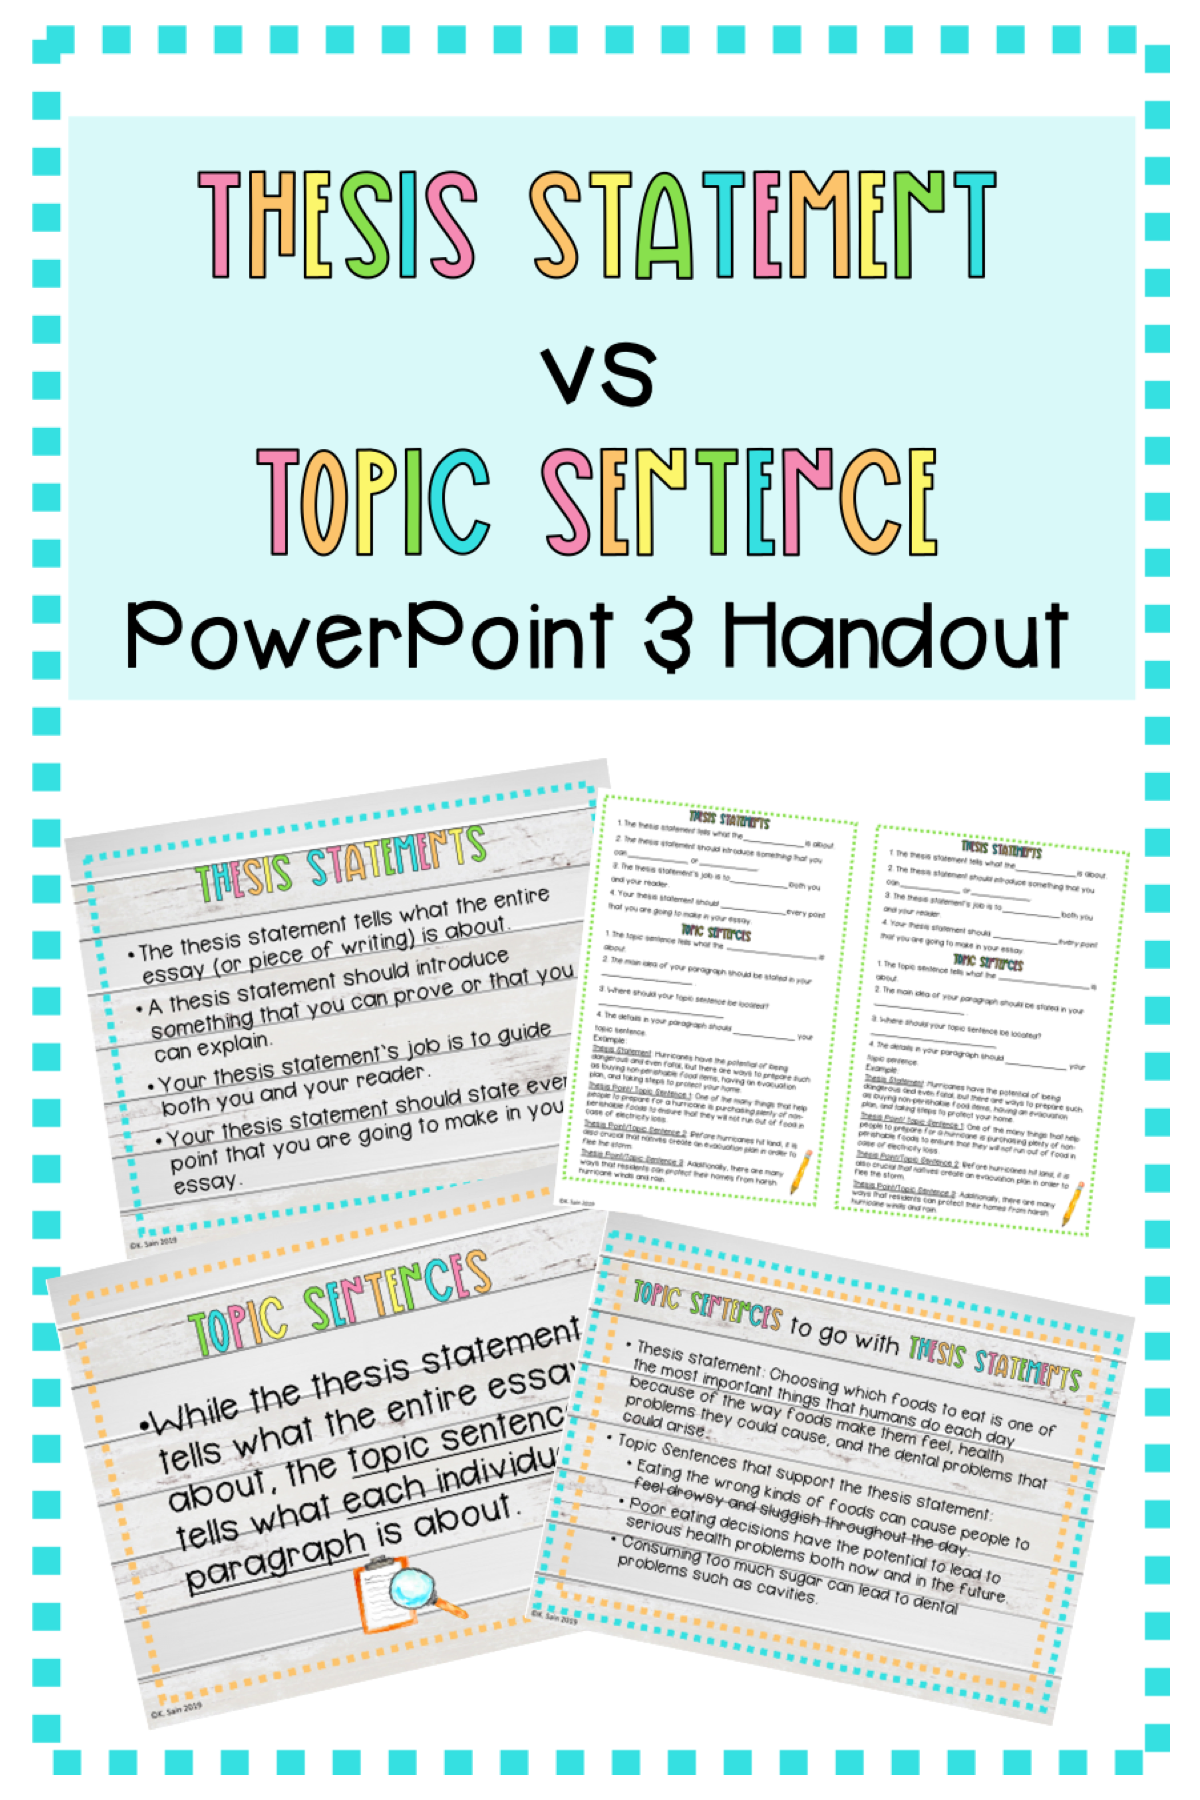 Thesis Statement Vs Topic Sentence Powerpoint With Handout